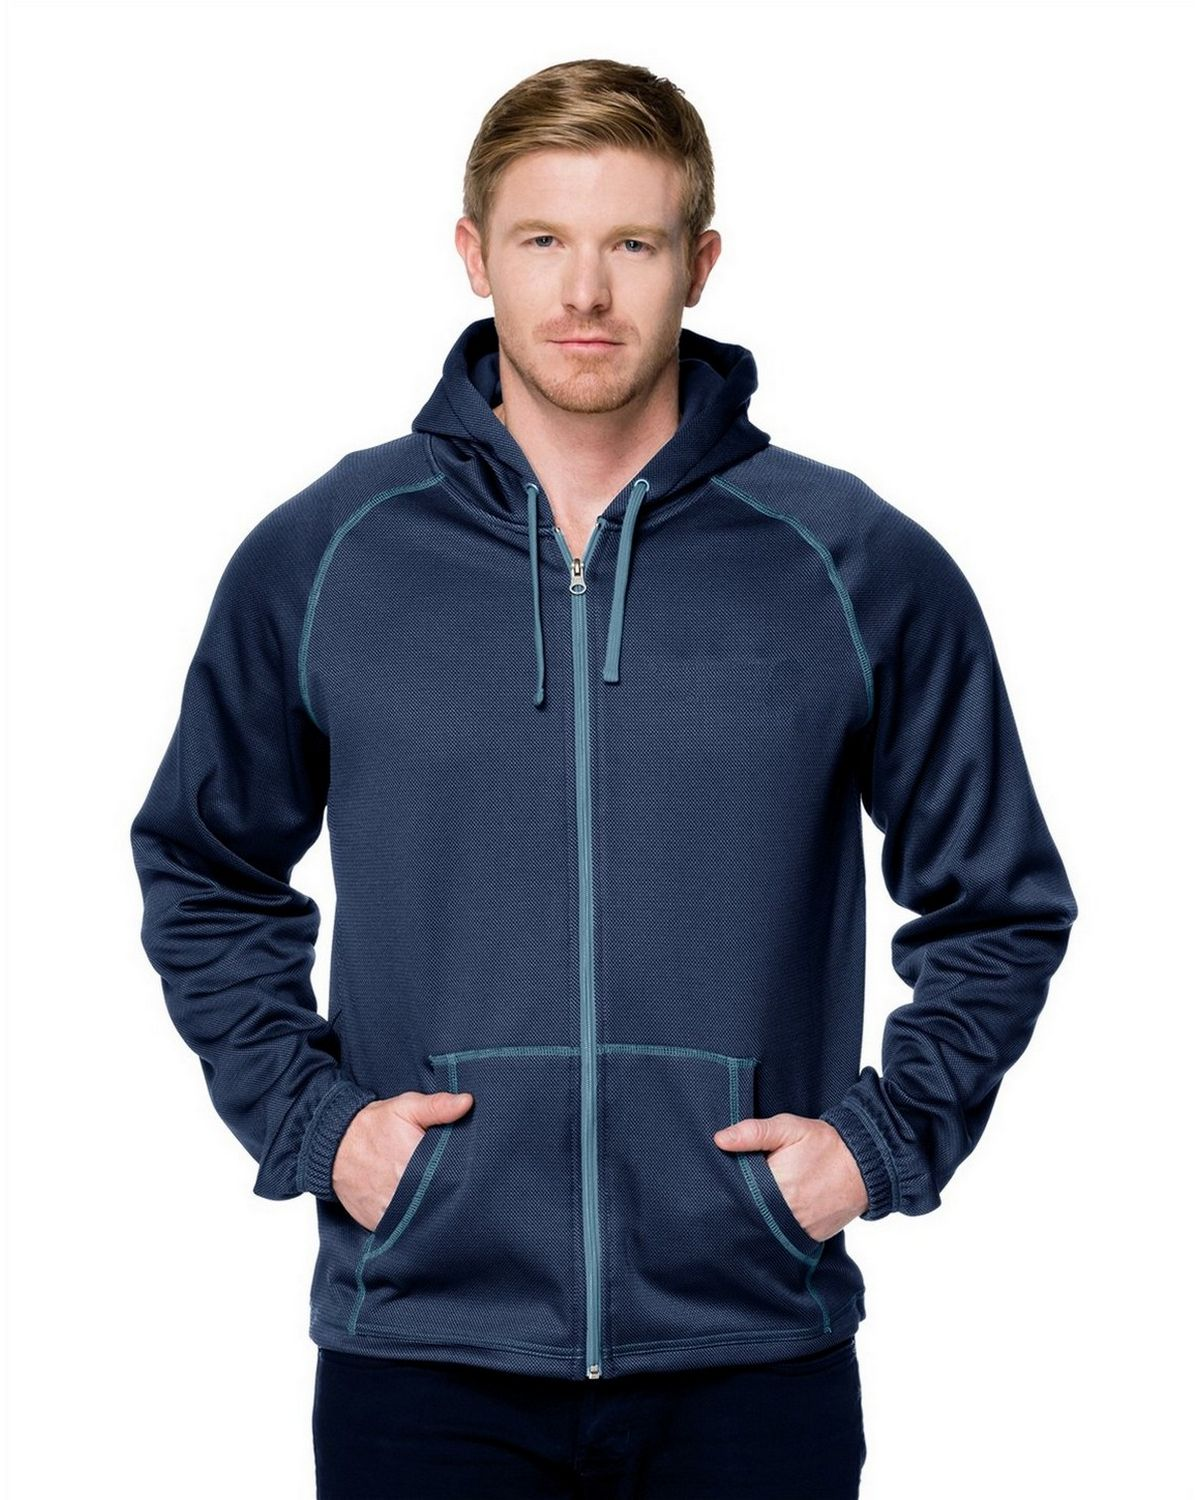 Tri-Mountain Racewear F7173 Full Zip Hoody - Navy/Slate Blue - M F7173